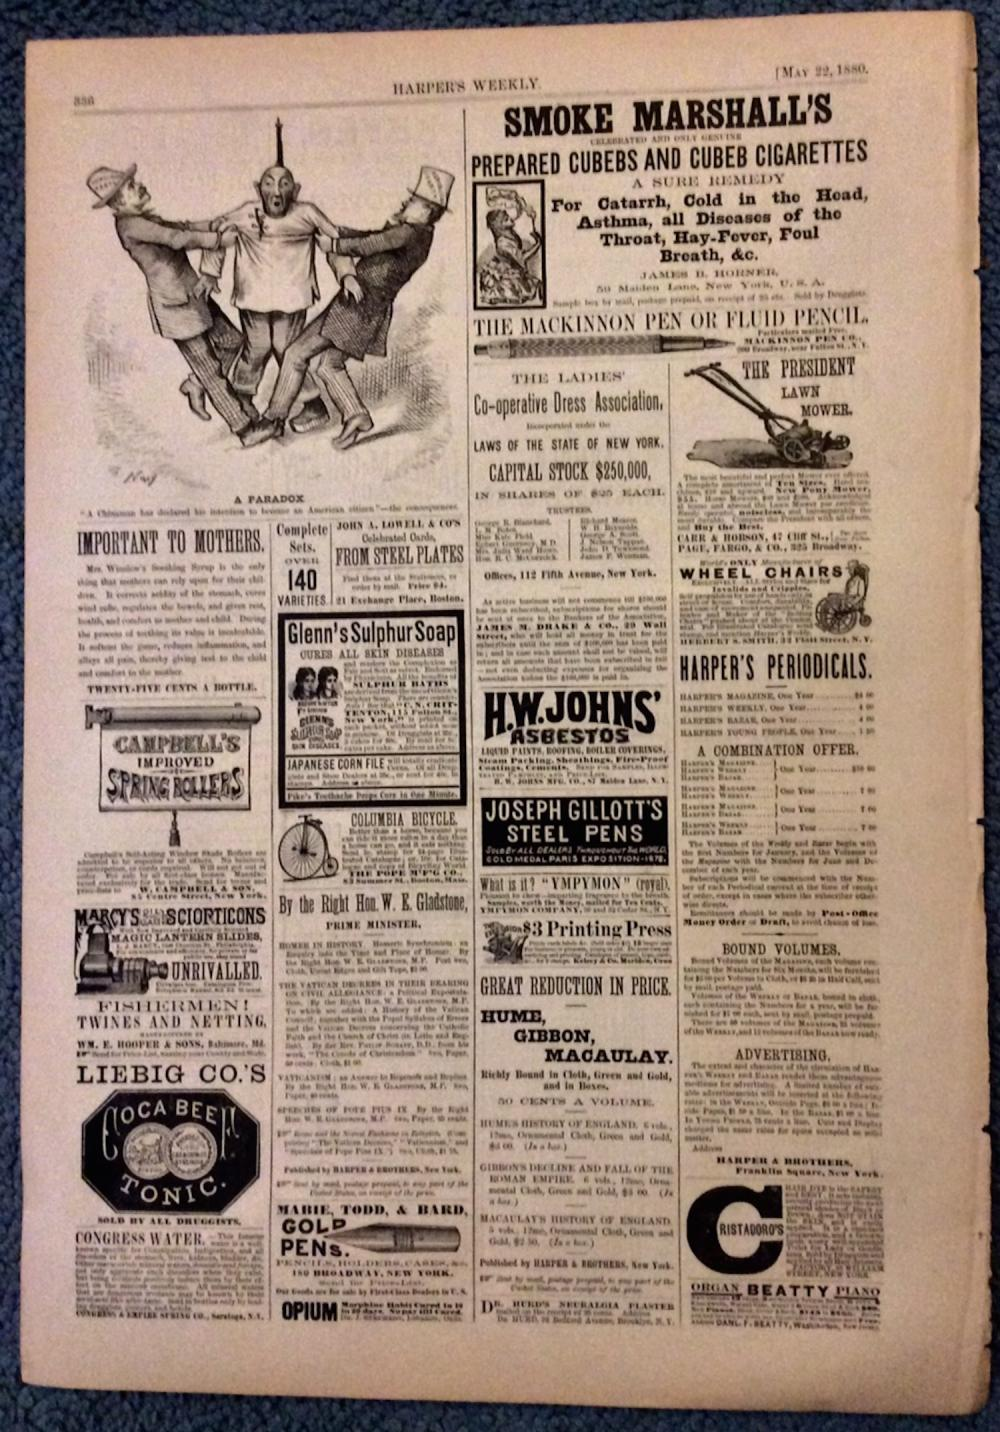 ANTIQUE 1880 Harper's Weekly 19th Century Double-sided Advertising Page